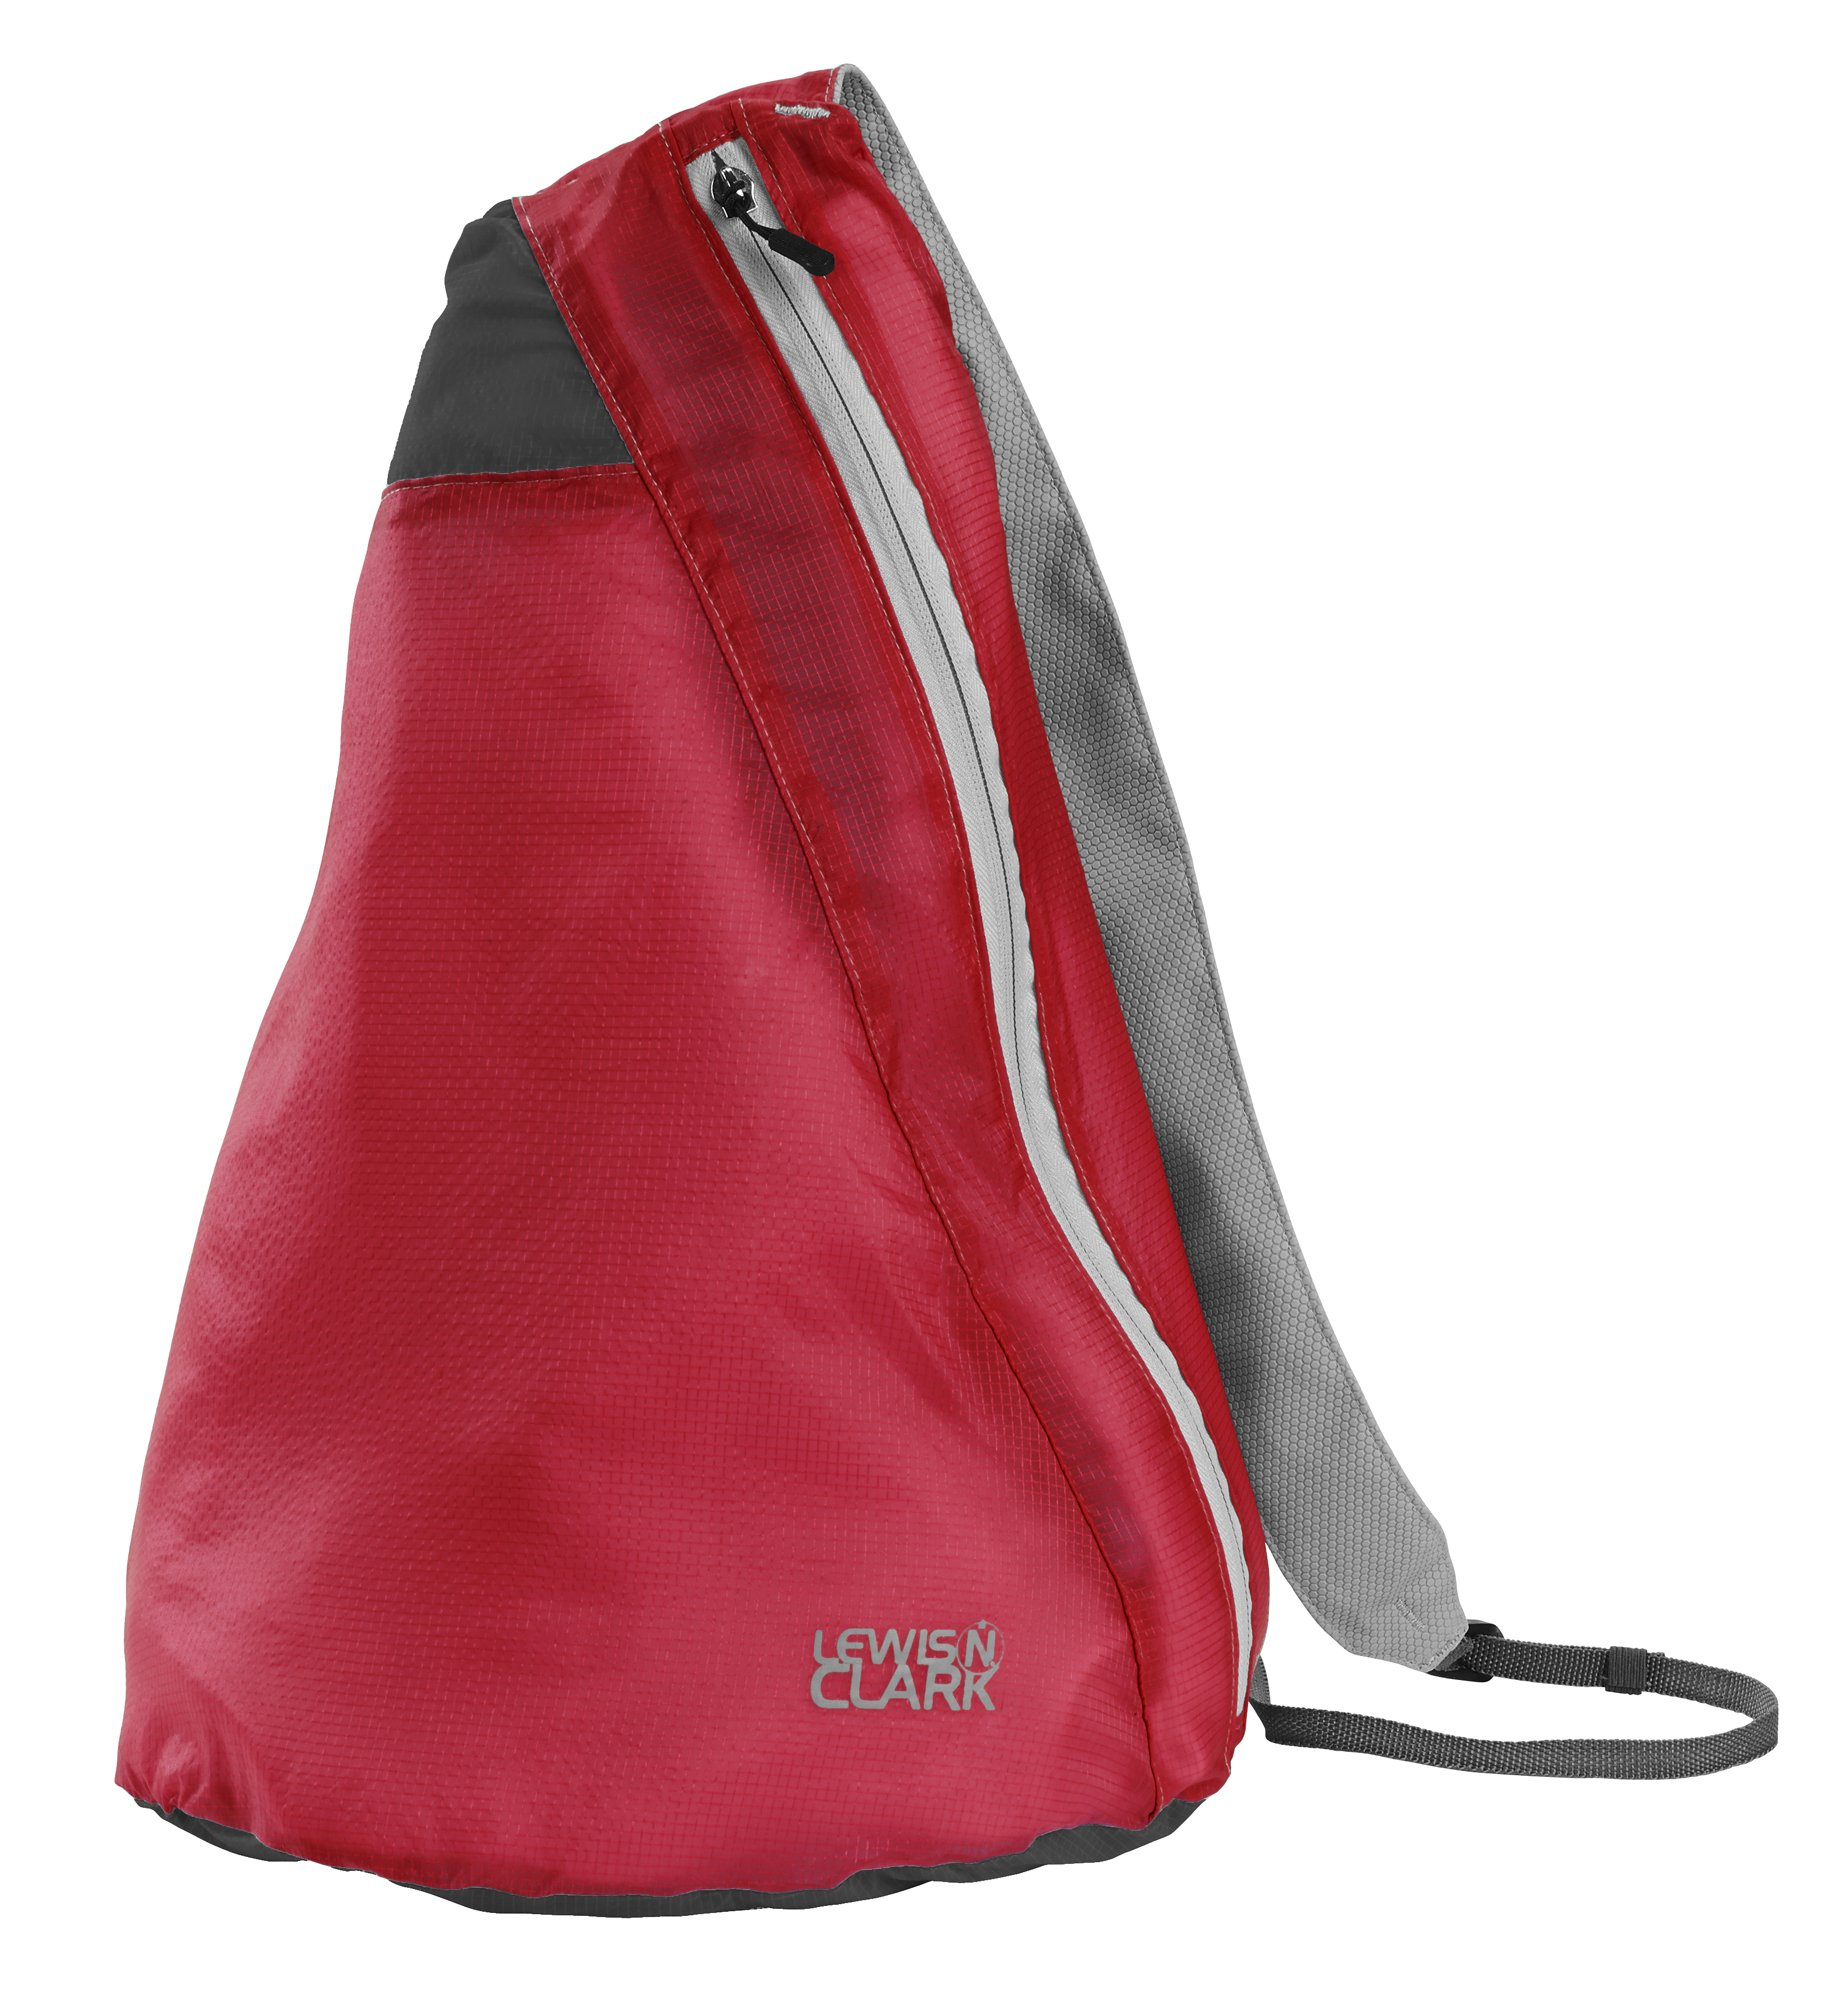 Lewis N Clark Electrolight Sling Pack, Red/Charcoal, One Size